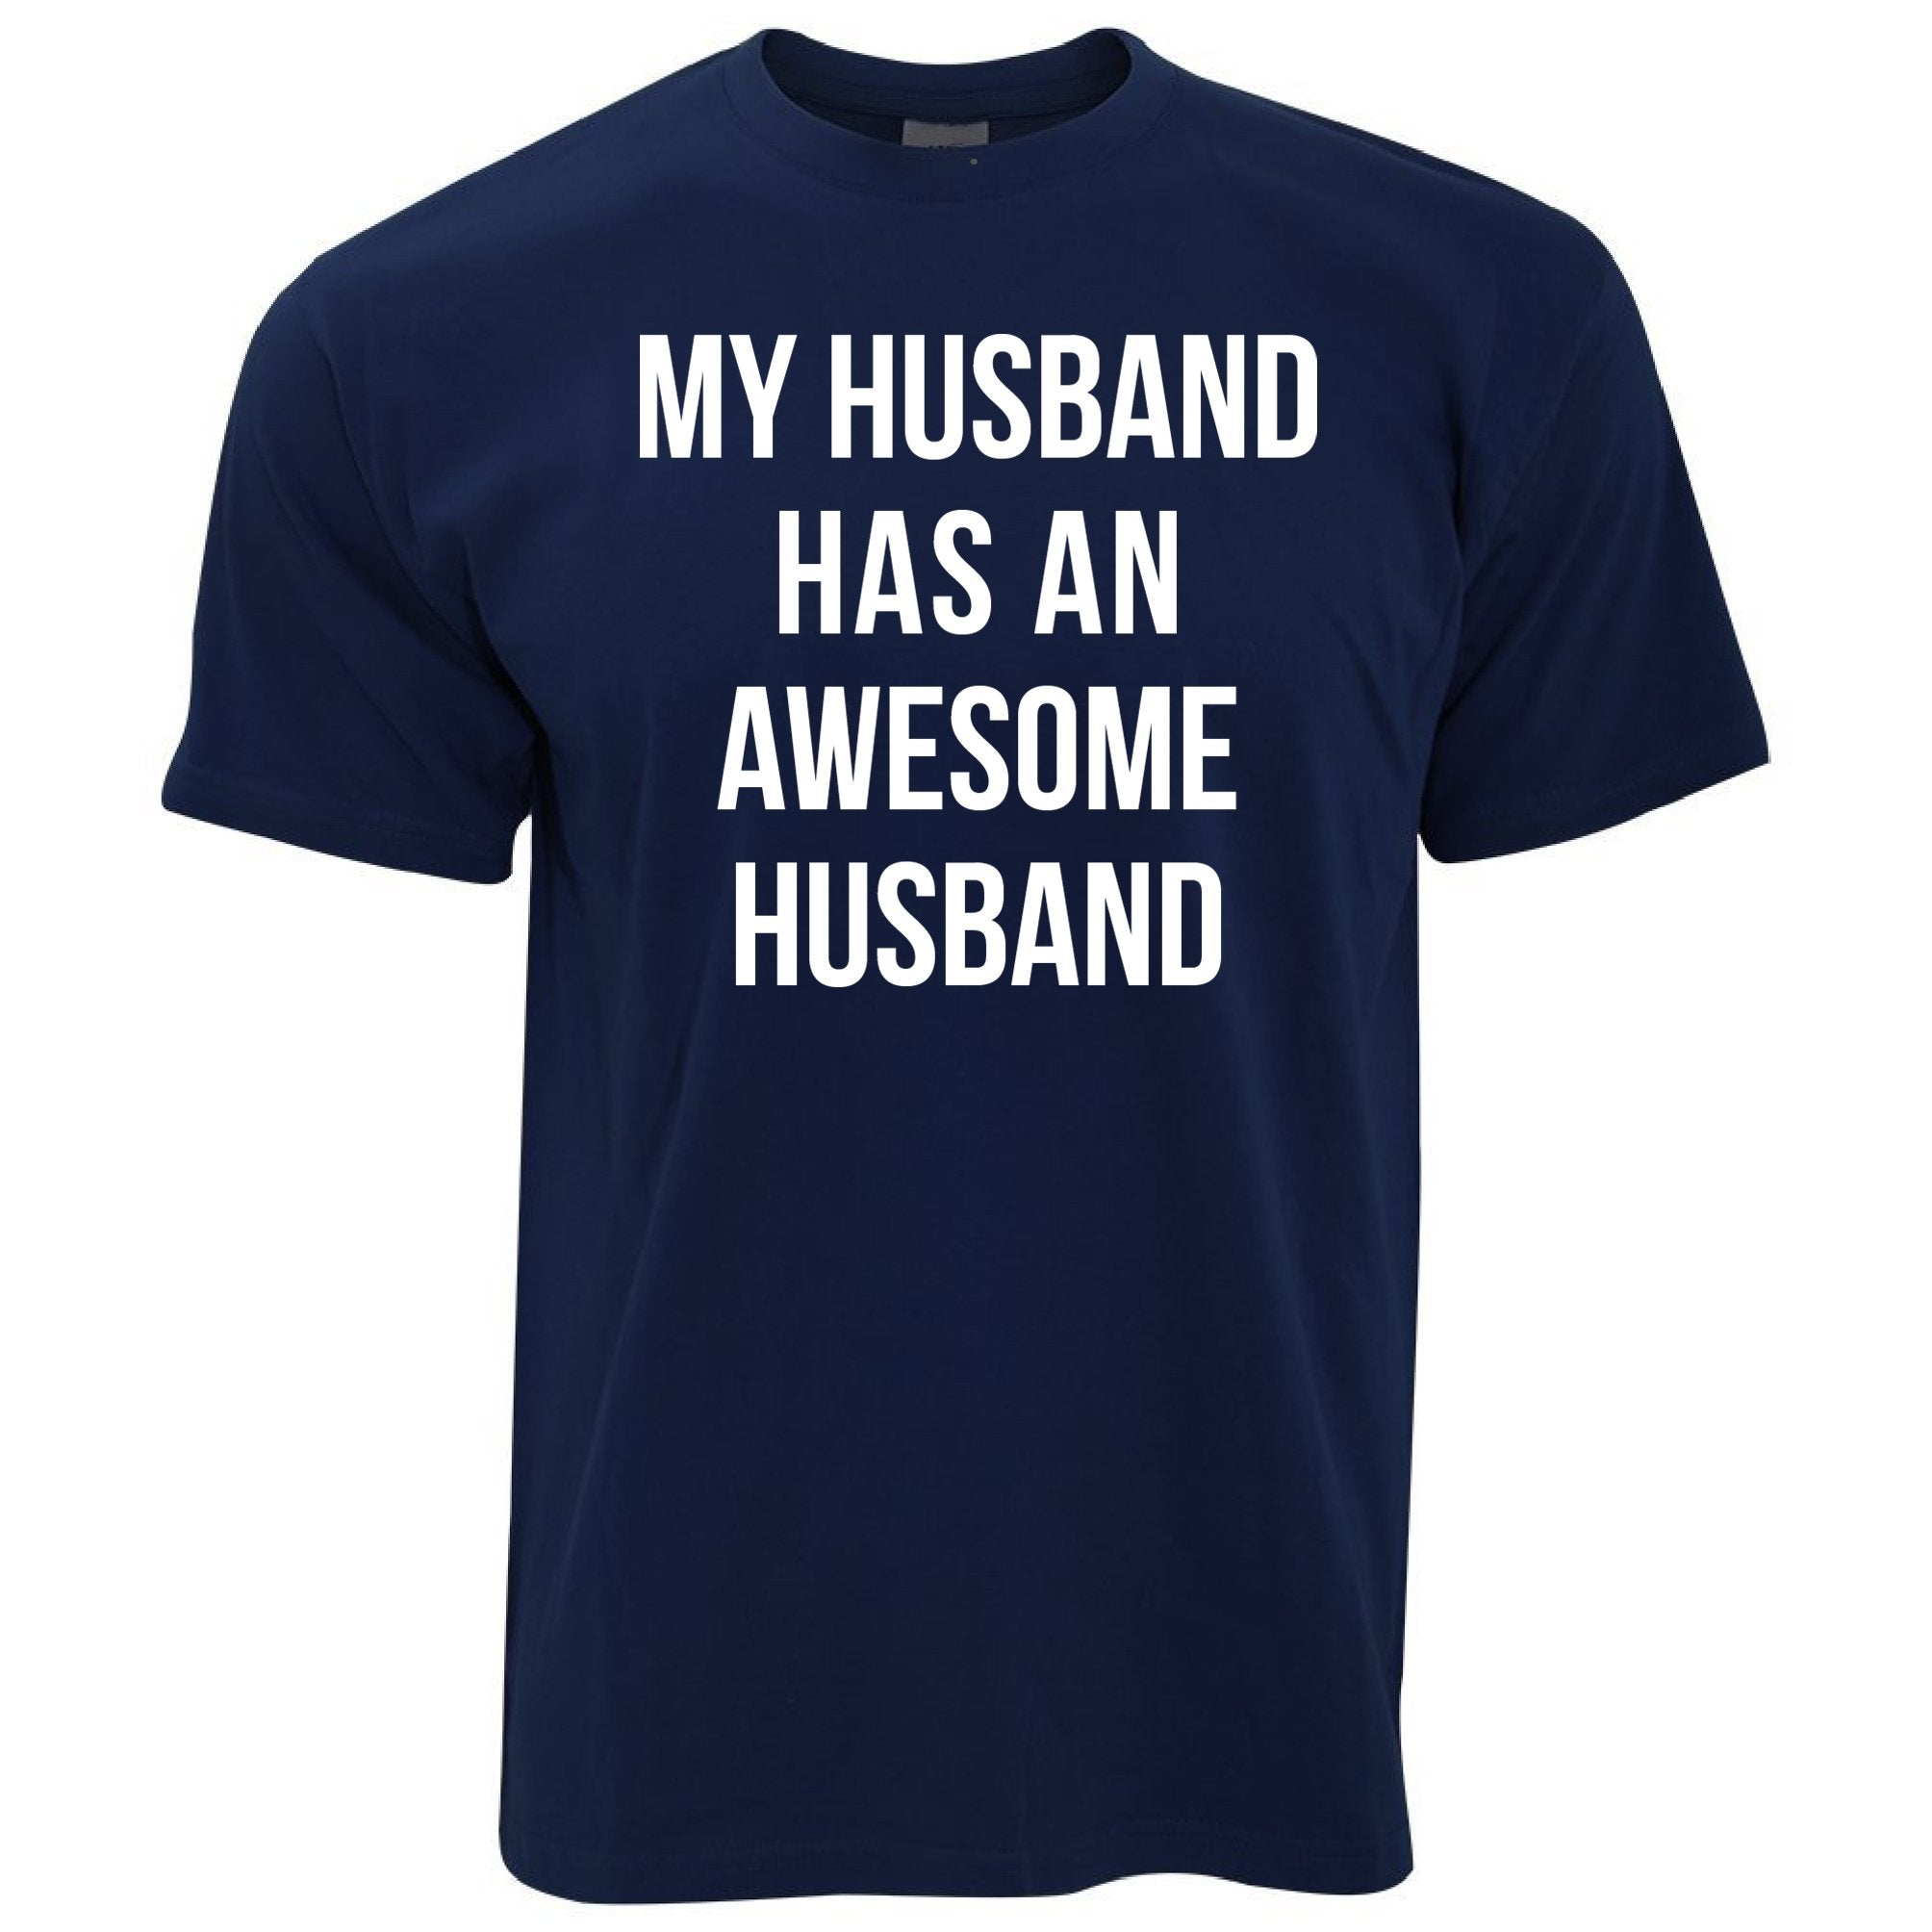 Joke Couples T Shirt My Husband Has An Awesome Husband